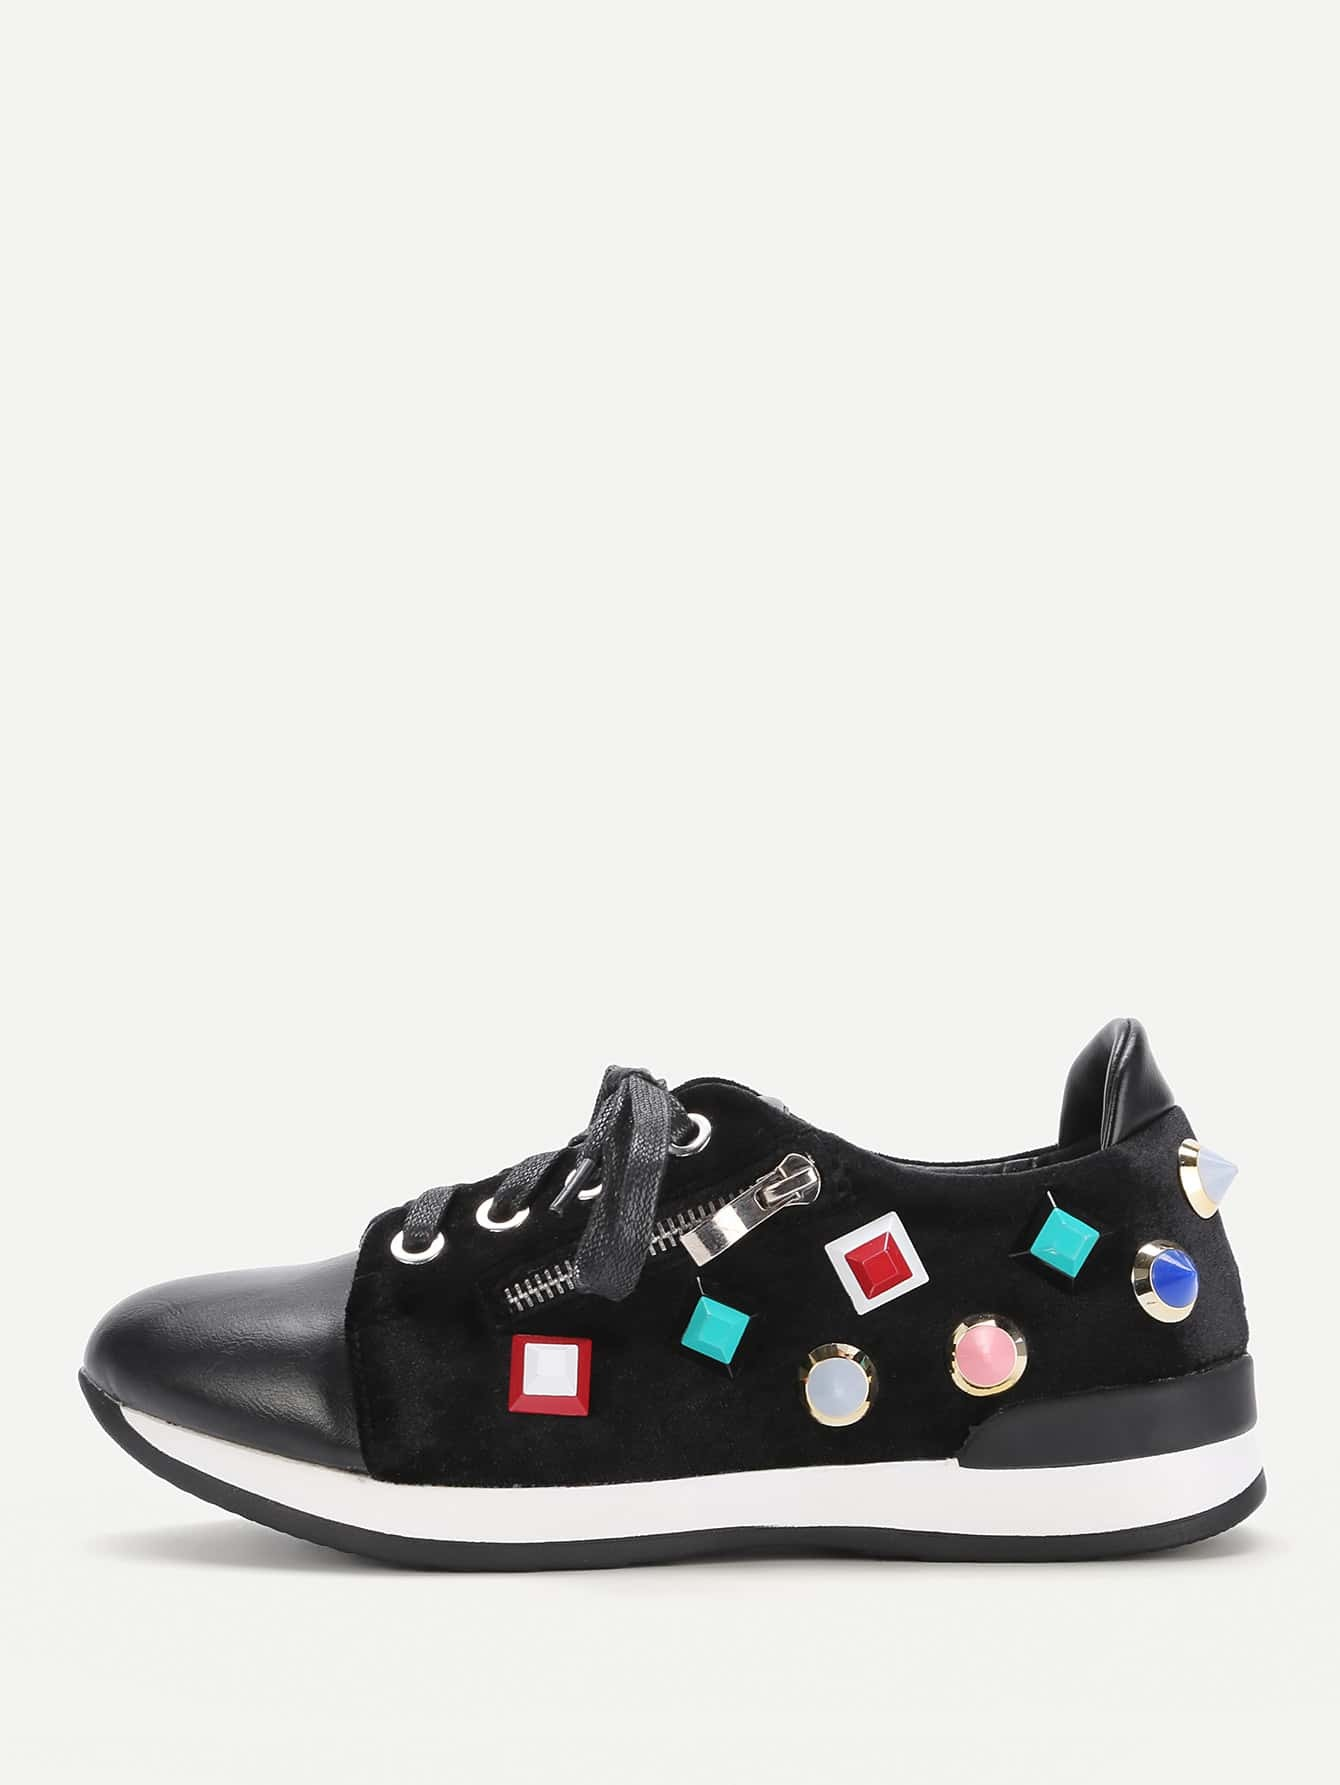 Studded Decorated Lace Up Trainers st decorated up